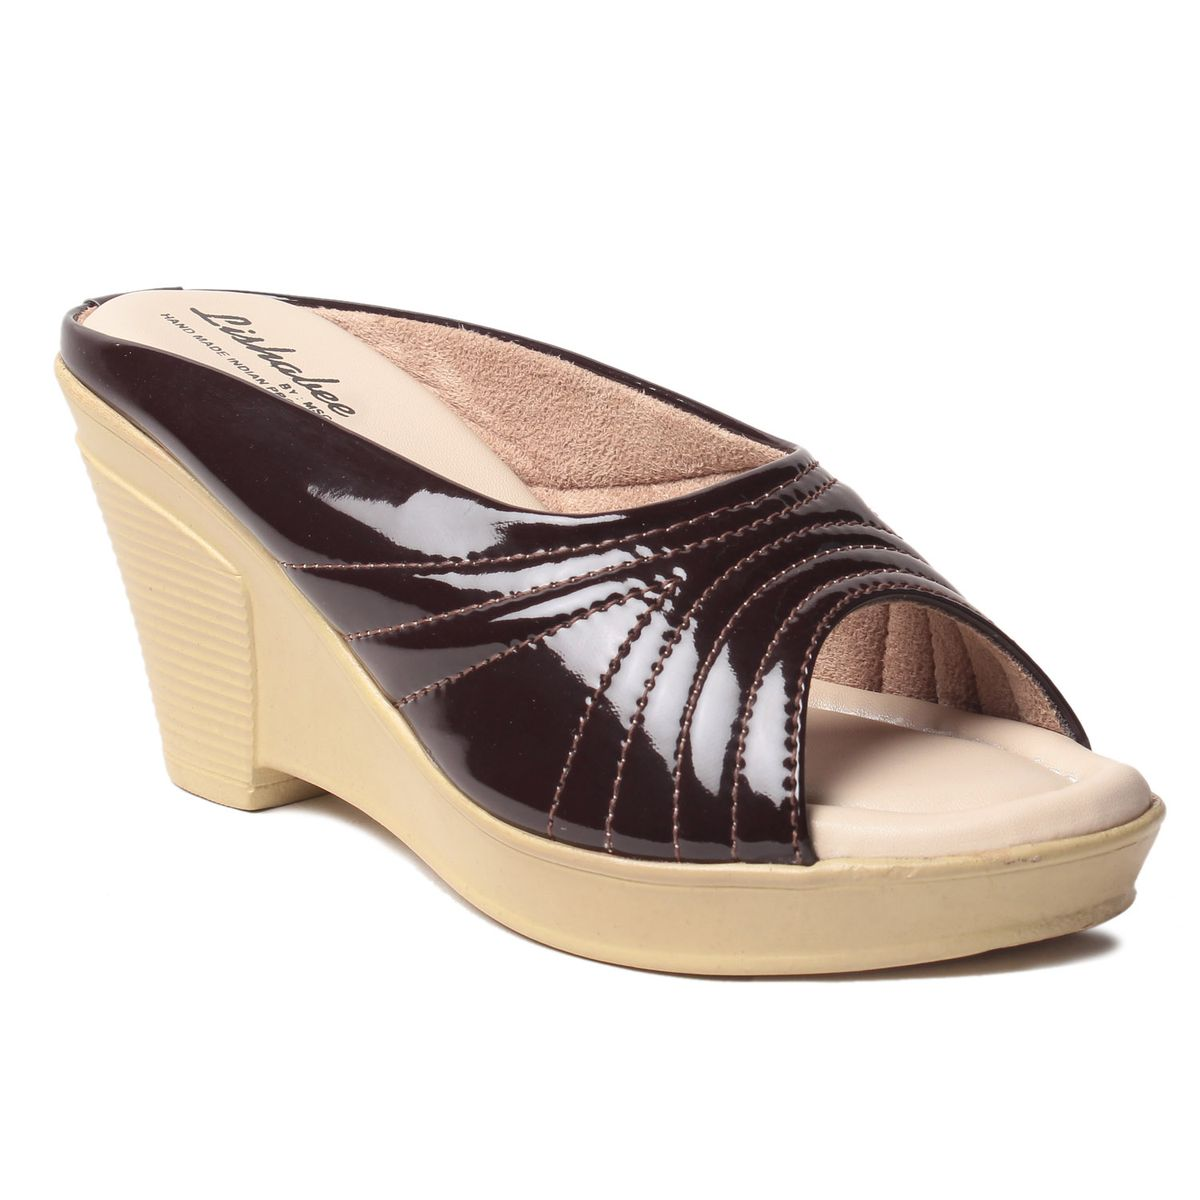 MSC Womens Brown Synthetic Leather Wedges